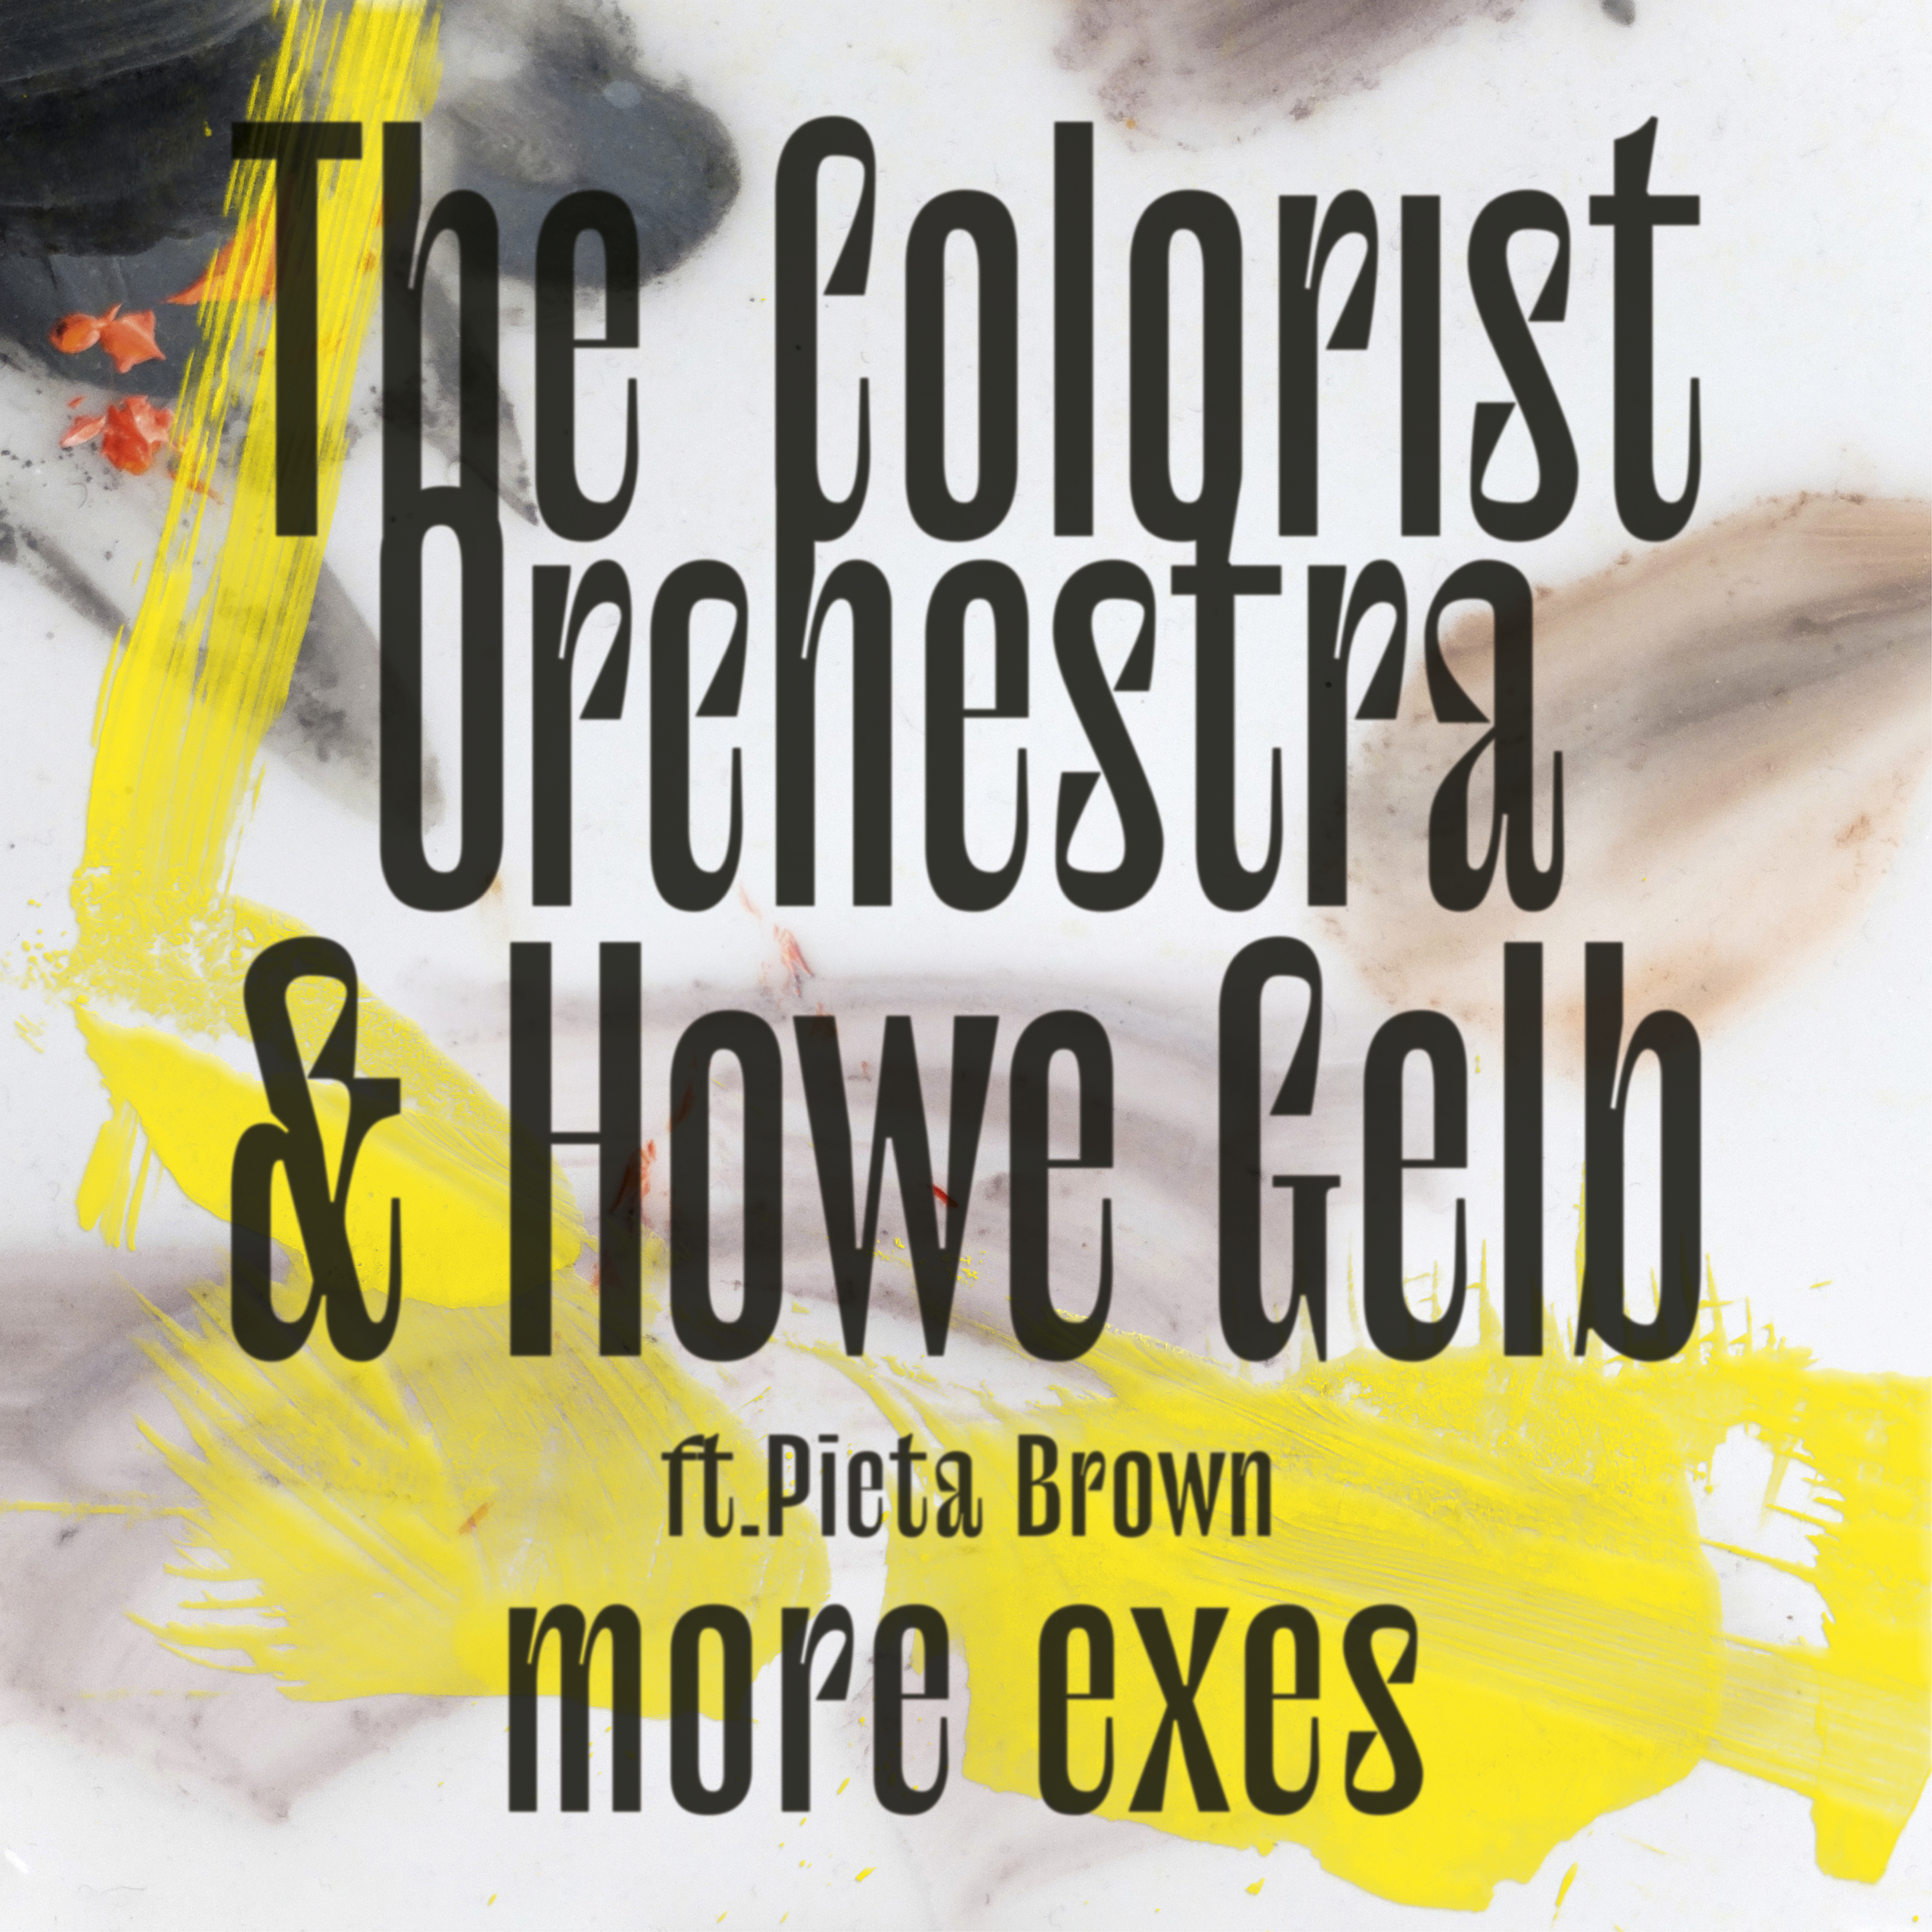 The Colorist Orchestra & Howe Gelb - More Exes - Single